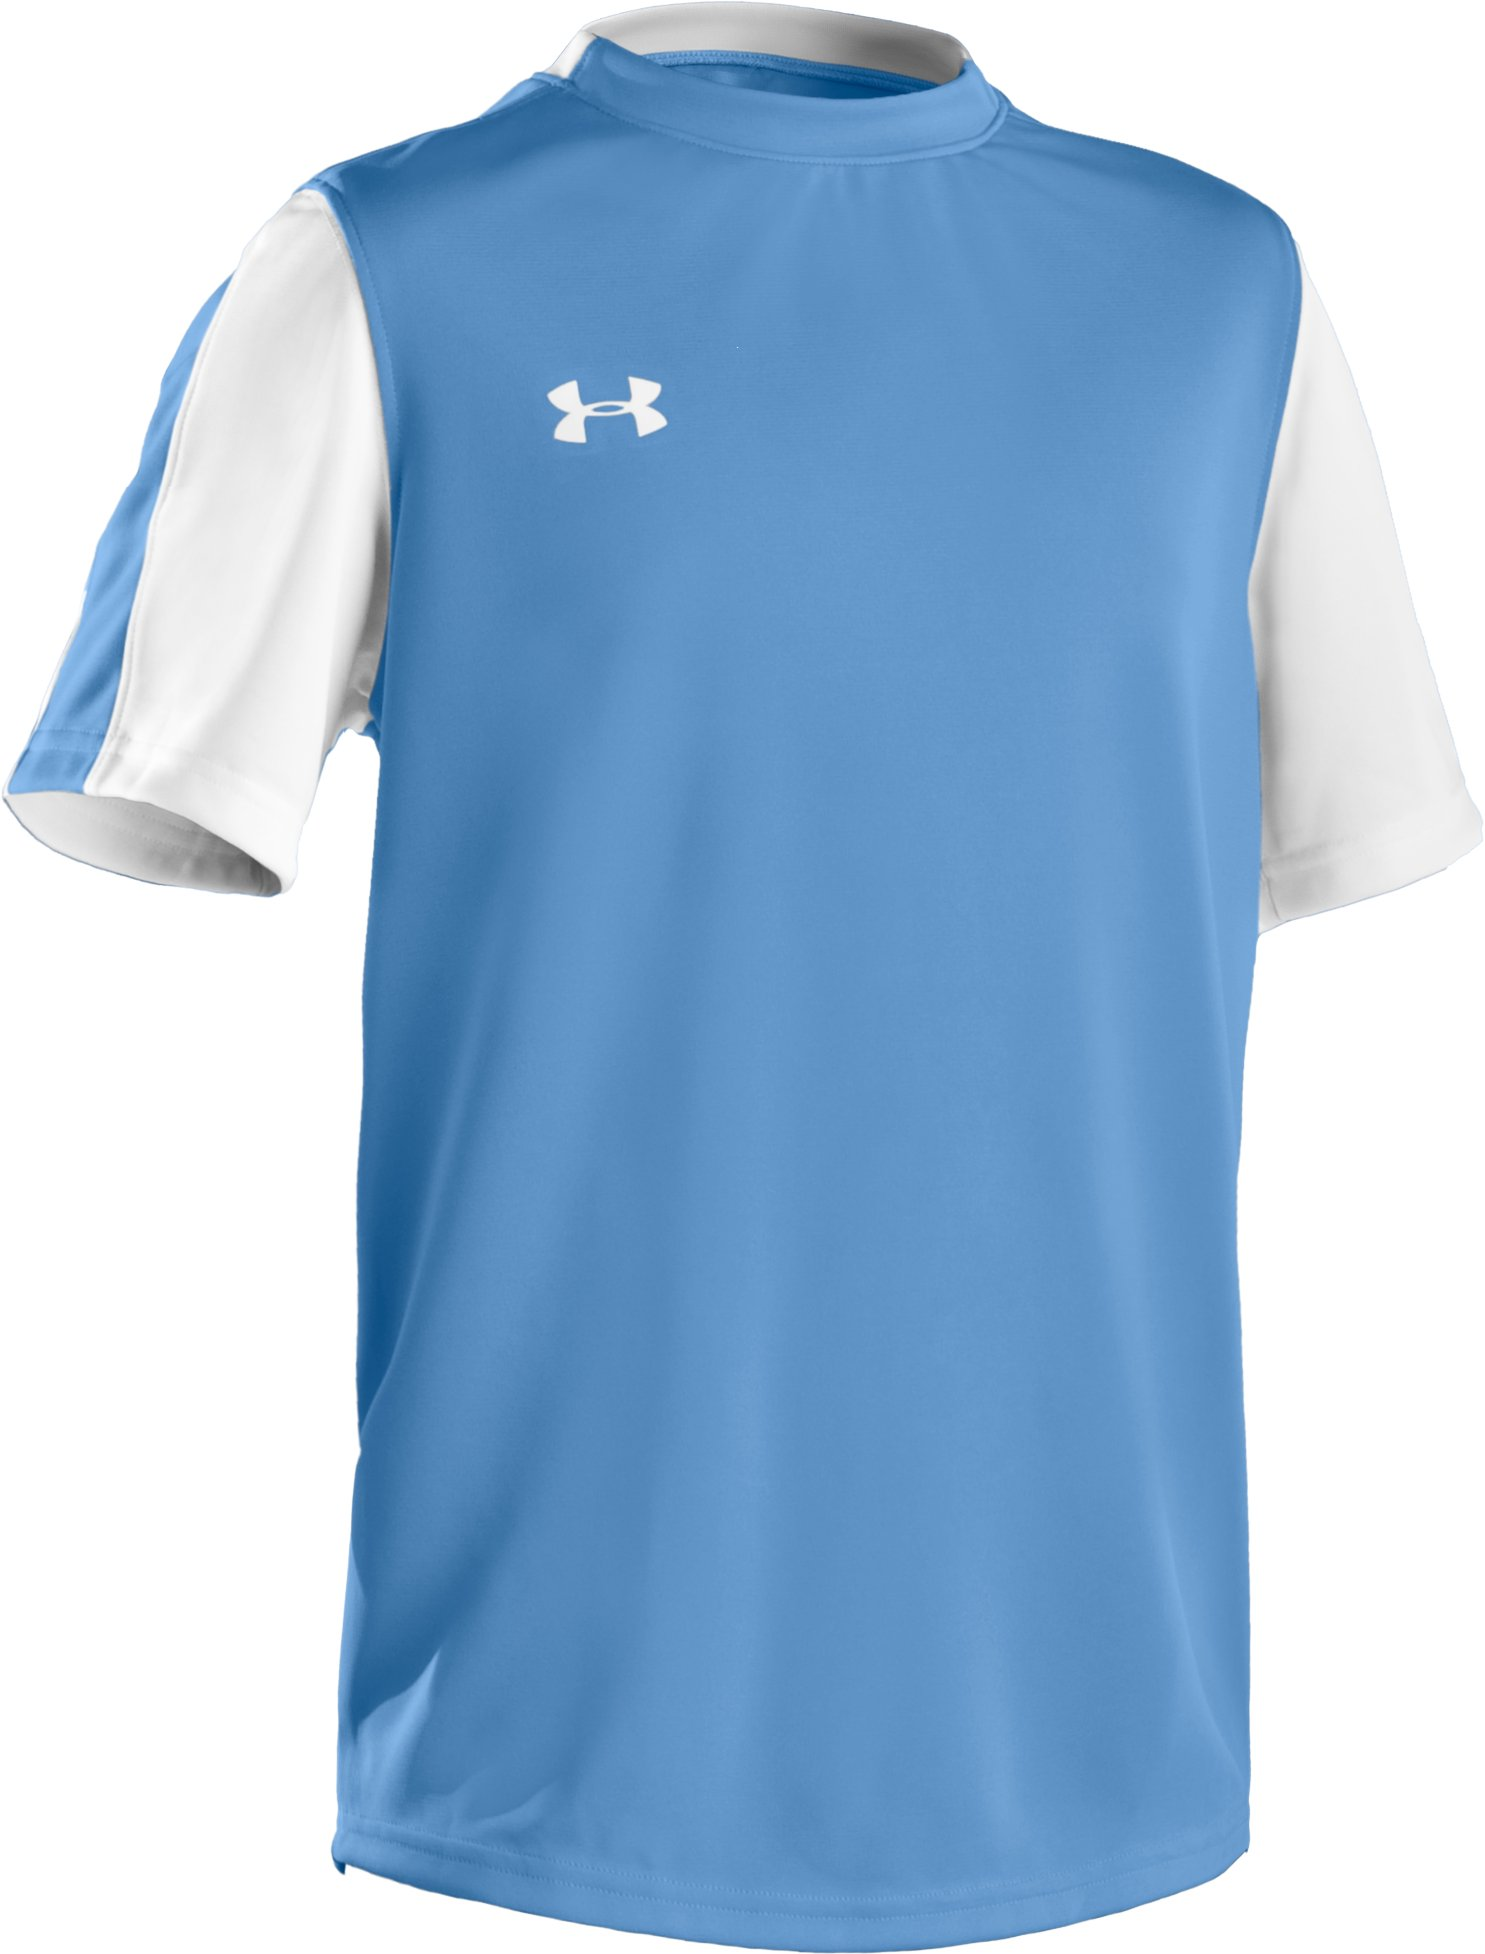 Boys' UA Classic Short Sleeve Jersey, Carolina Blue